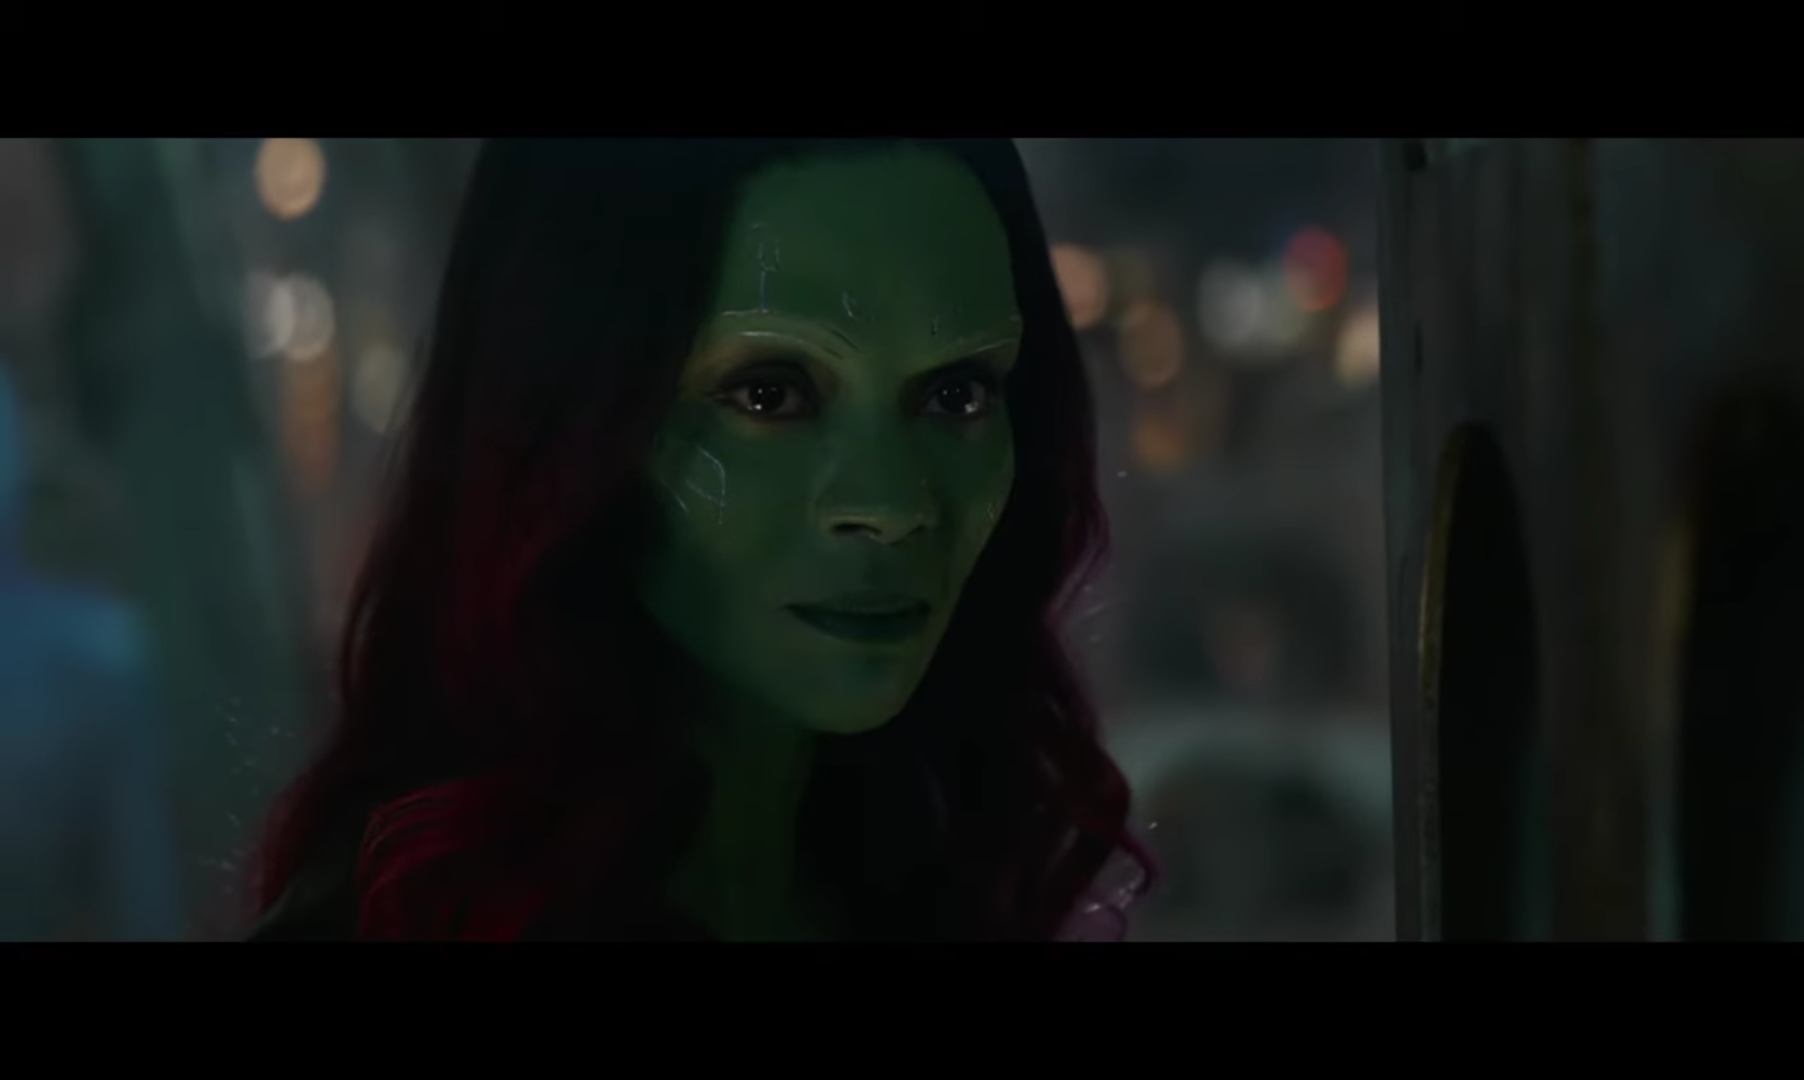 Image Credit: Marvel Studios/Avengers (Youtube/Looper)